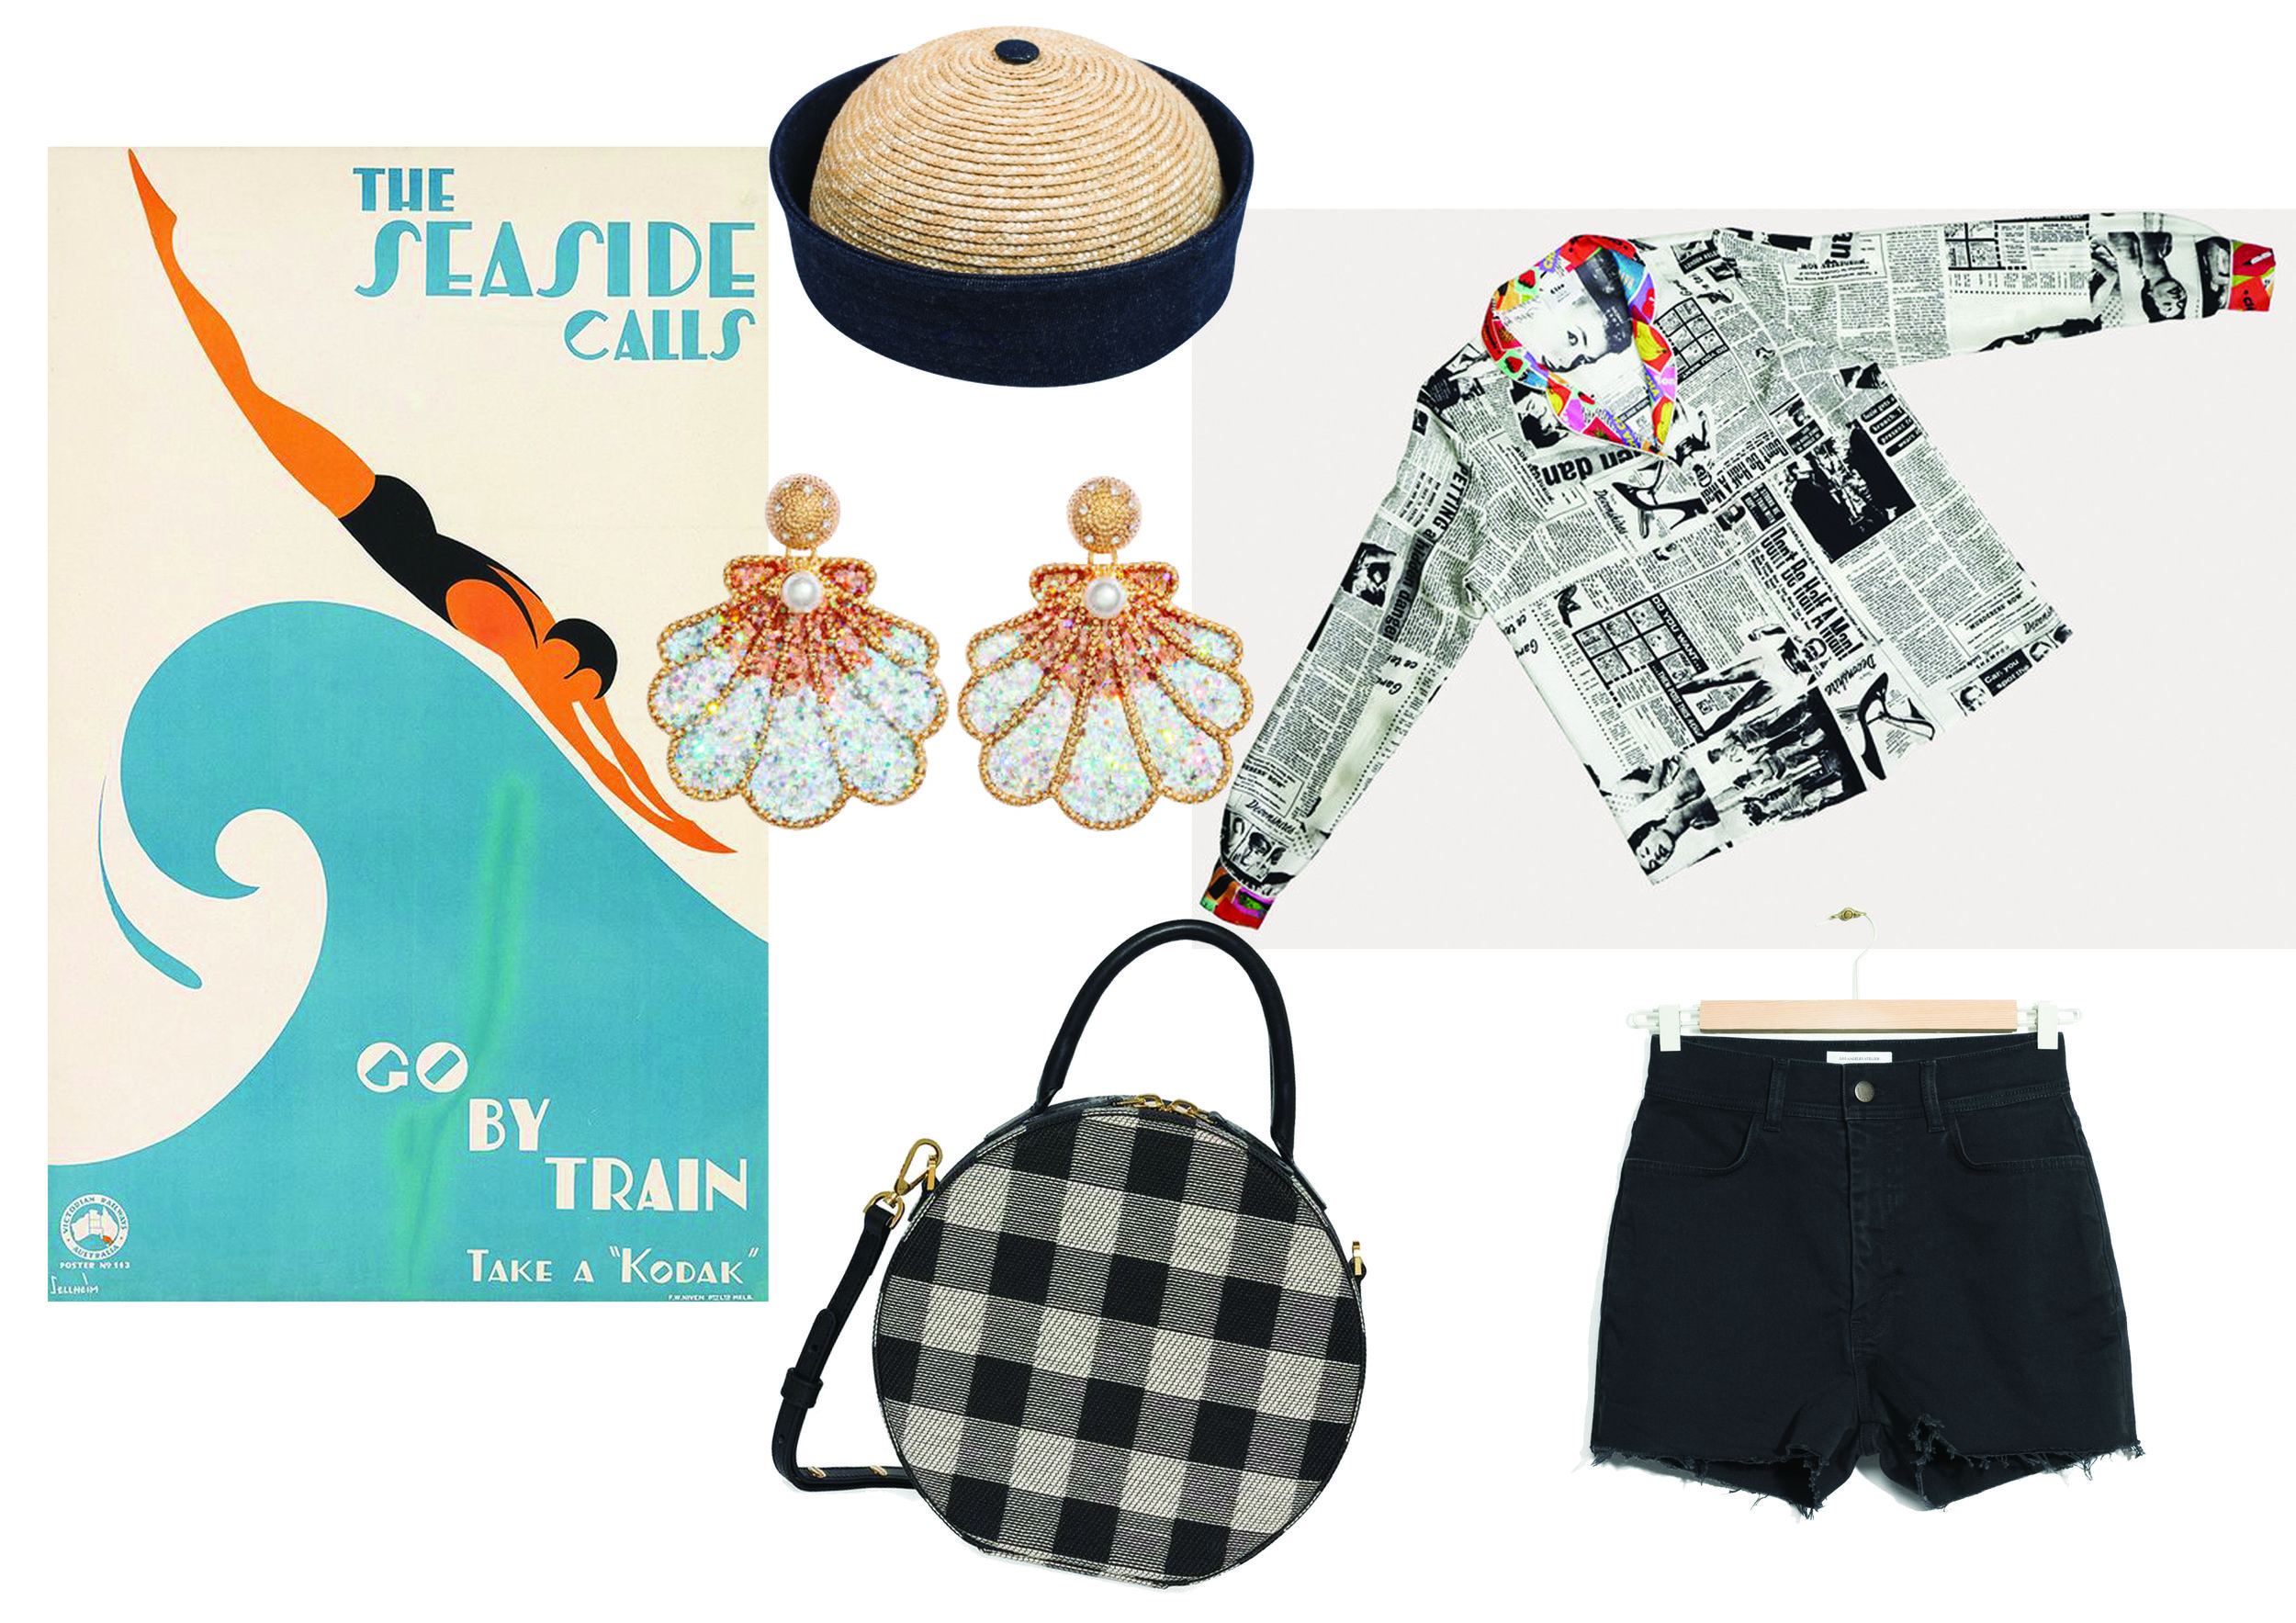 Hat by Béton Ciré ,  Shirt by Cléo Ferin Mercury ,  Denim Shorts by &Other Stories ,  Bag by Mansur Gavriel ,  Earrings by H&M .